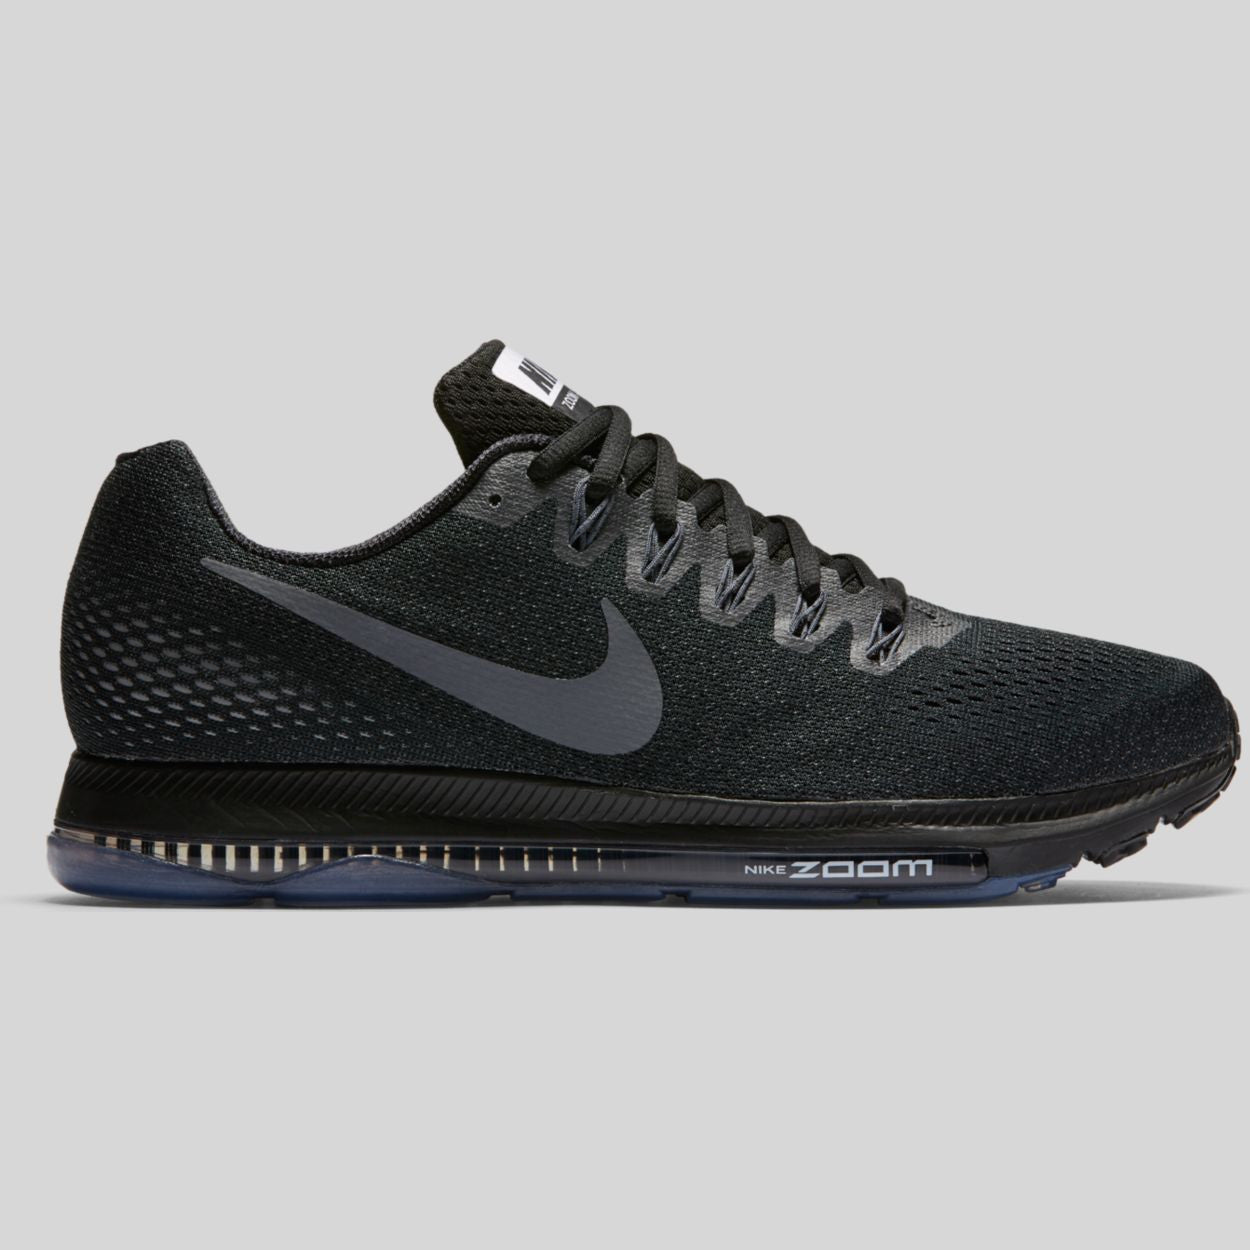 Nike Zoom All Out Low Black Dark Grey Anthracite White (878670-001 ... 05ddf0bfc780